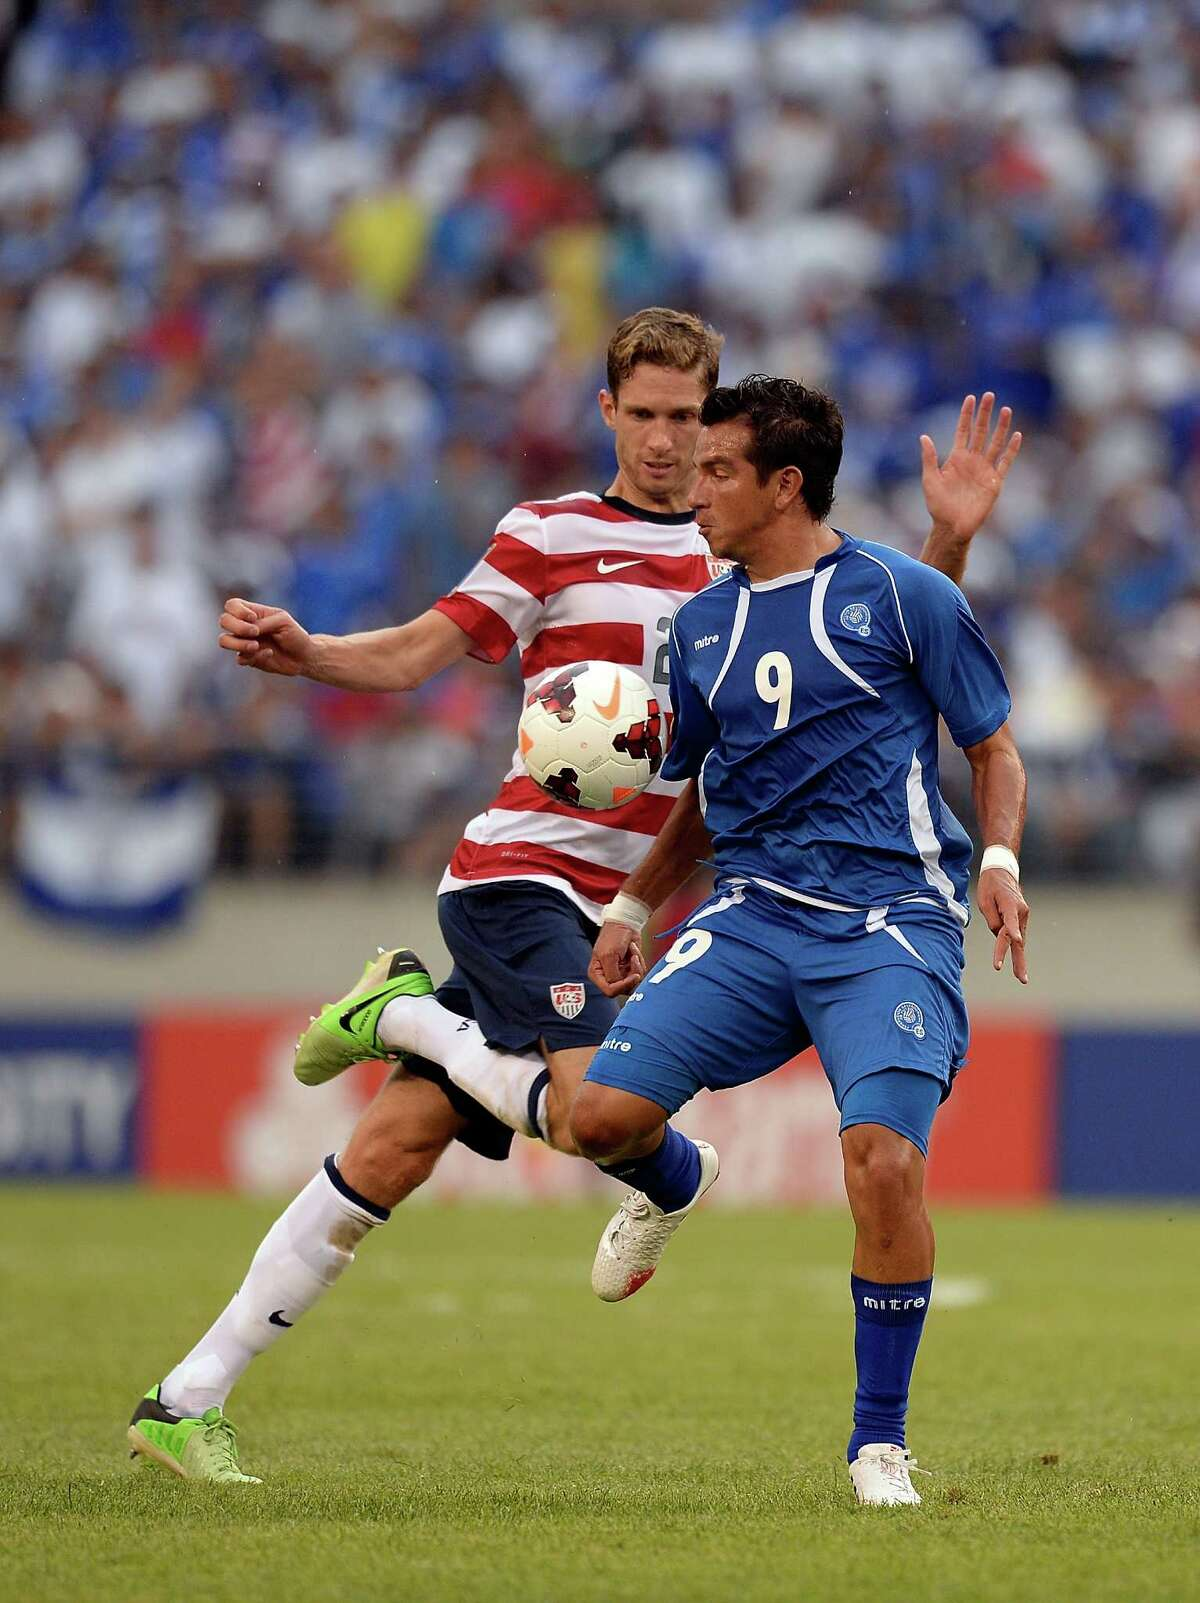 Clarence Goodson #21 of the United States battles for the ball against Rafael Burgos #9 of El Salvador in the second half during the 2013 CONCACAF Gold Cup quarterfinal game at M&T Bank Stadium on July 21, 2013 in Baltimore, Maryland.